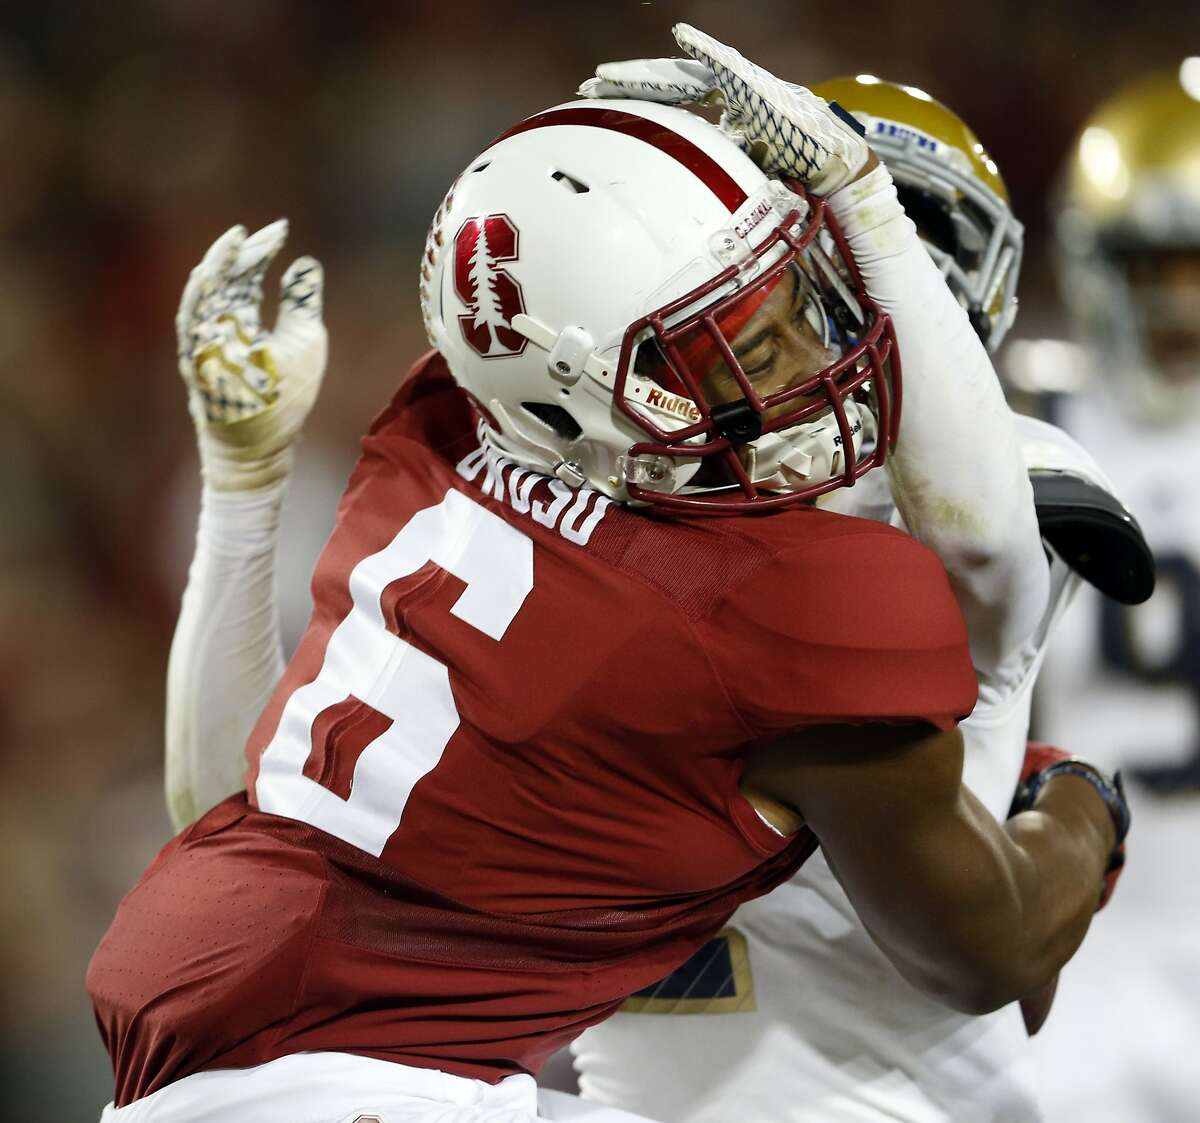 Stanford's Francis Owusu catches a touchdown pass against the back of UCLA defender Jaleel Wadood in 3rd quarter during Pac 12 football game at Stanford Stadium in Stanford, Calif., on Thursday, October 15, 2015.